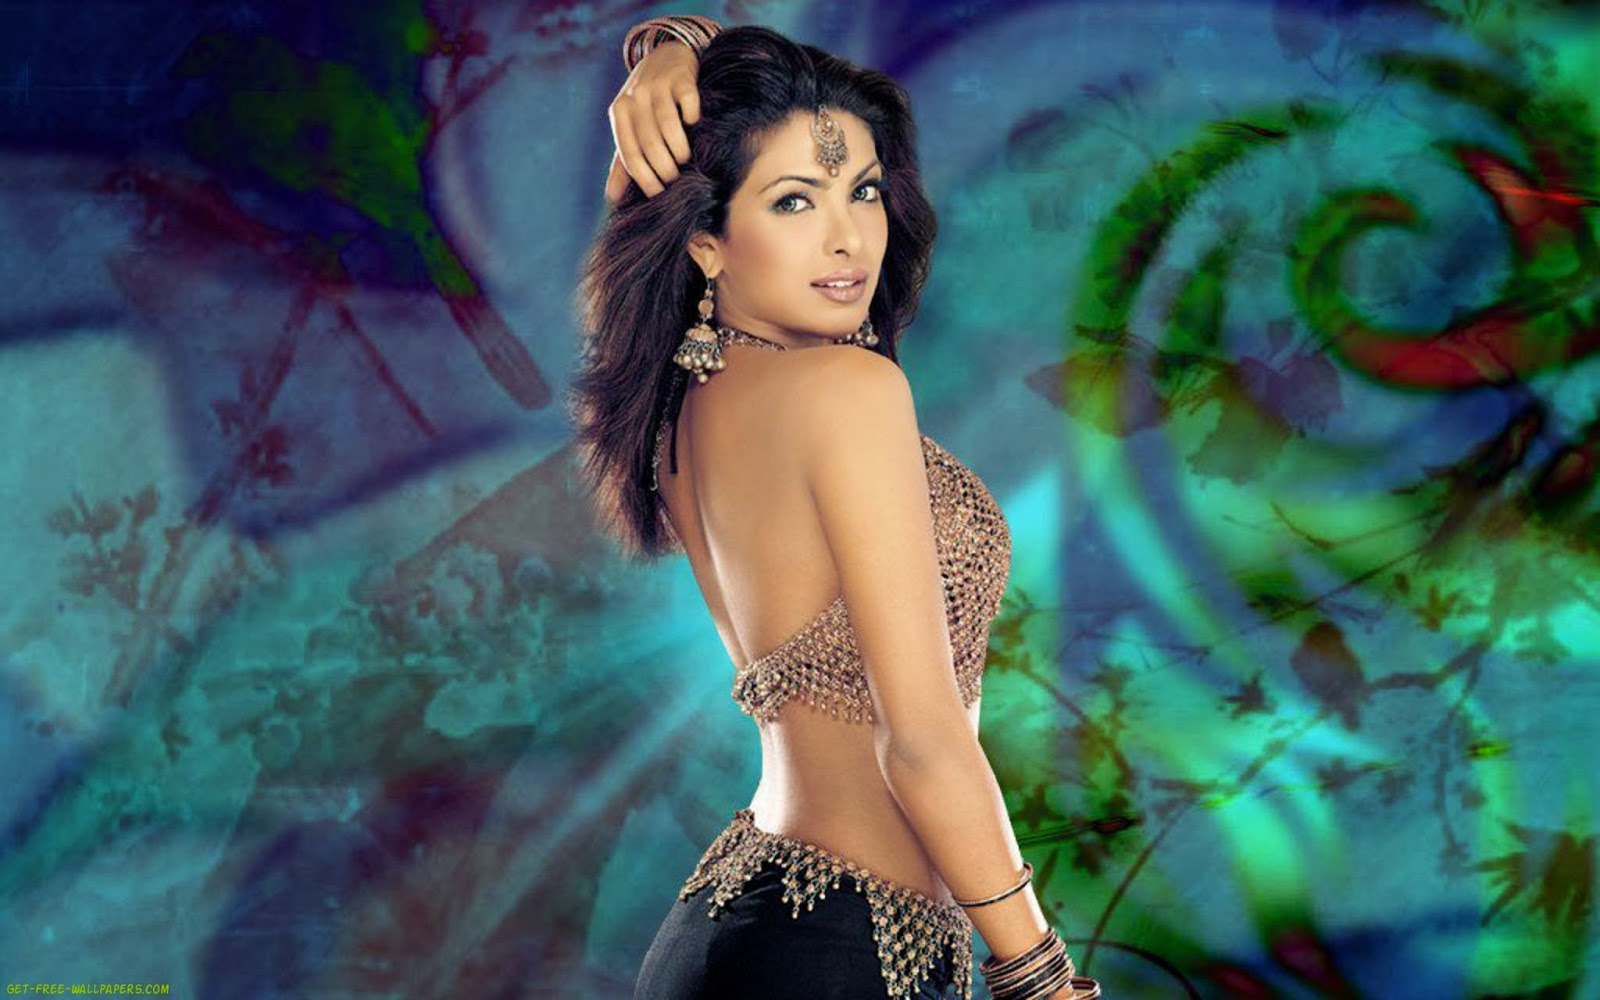 filmy enjoyment: bollywood actress priyanka chopra hot pics and hd